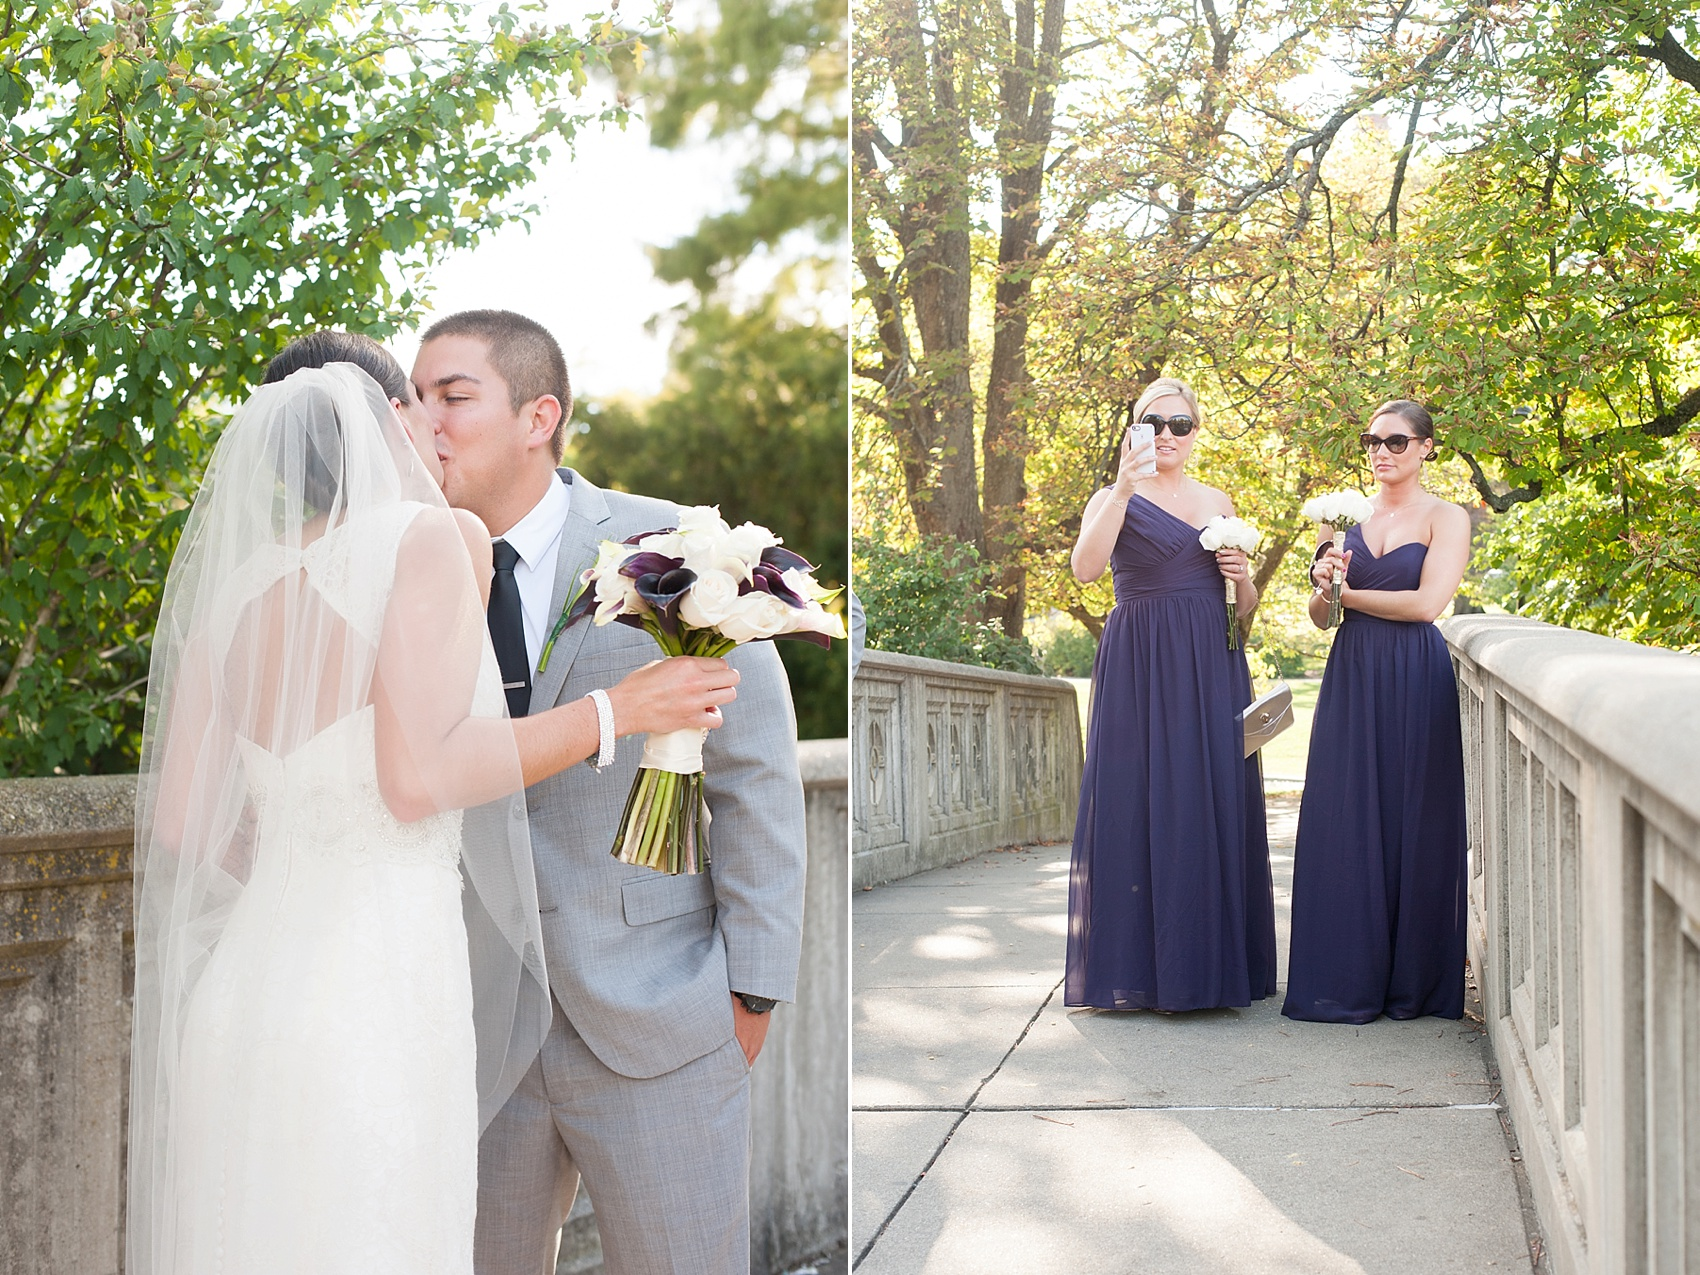 First look at Eden Park for downtown Cincinnati, Ohio wedding at The Center. Photos by Mikkel Paige Photography.